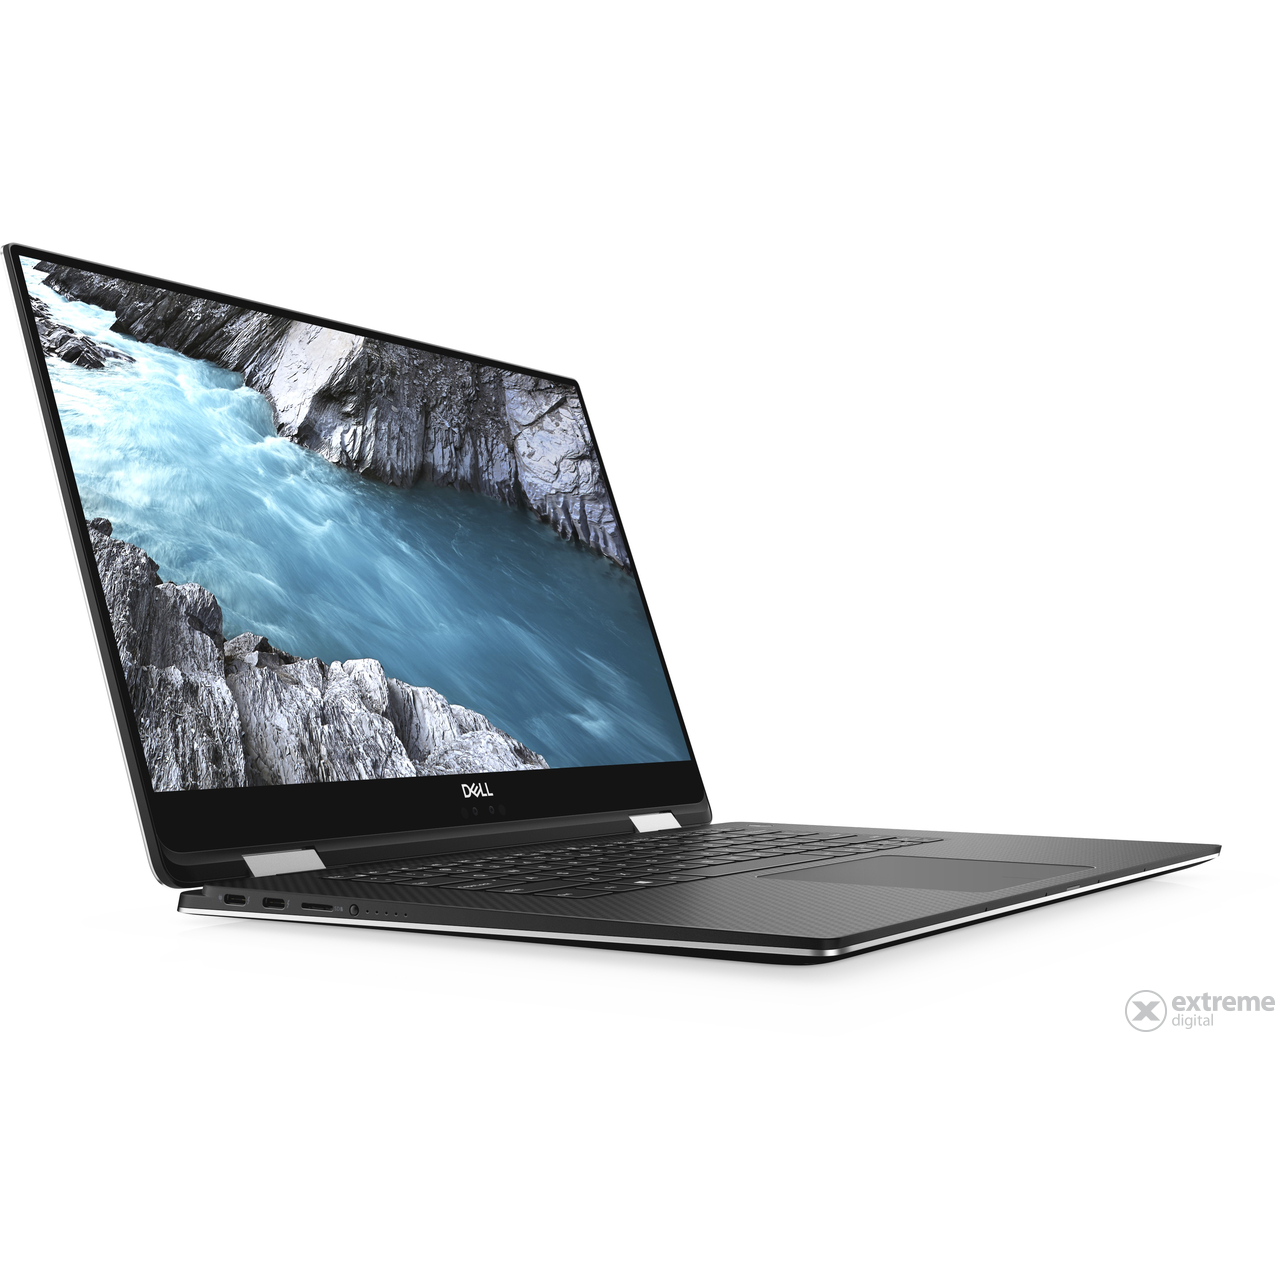 Dell Xps 15 2in1 DLL_XPS152IN1_251849 notebook, ezüst + Windows 10 Home